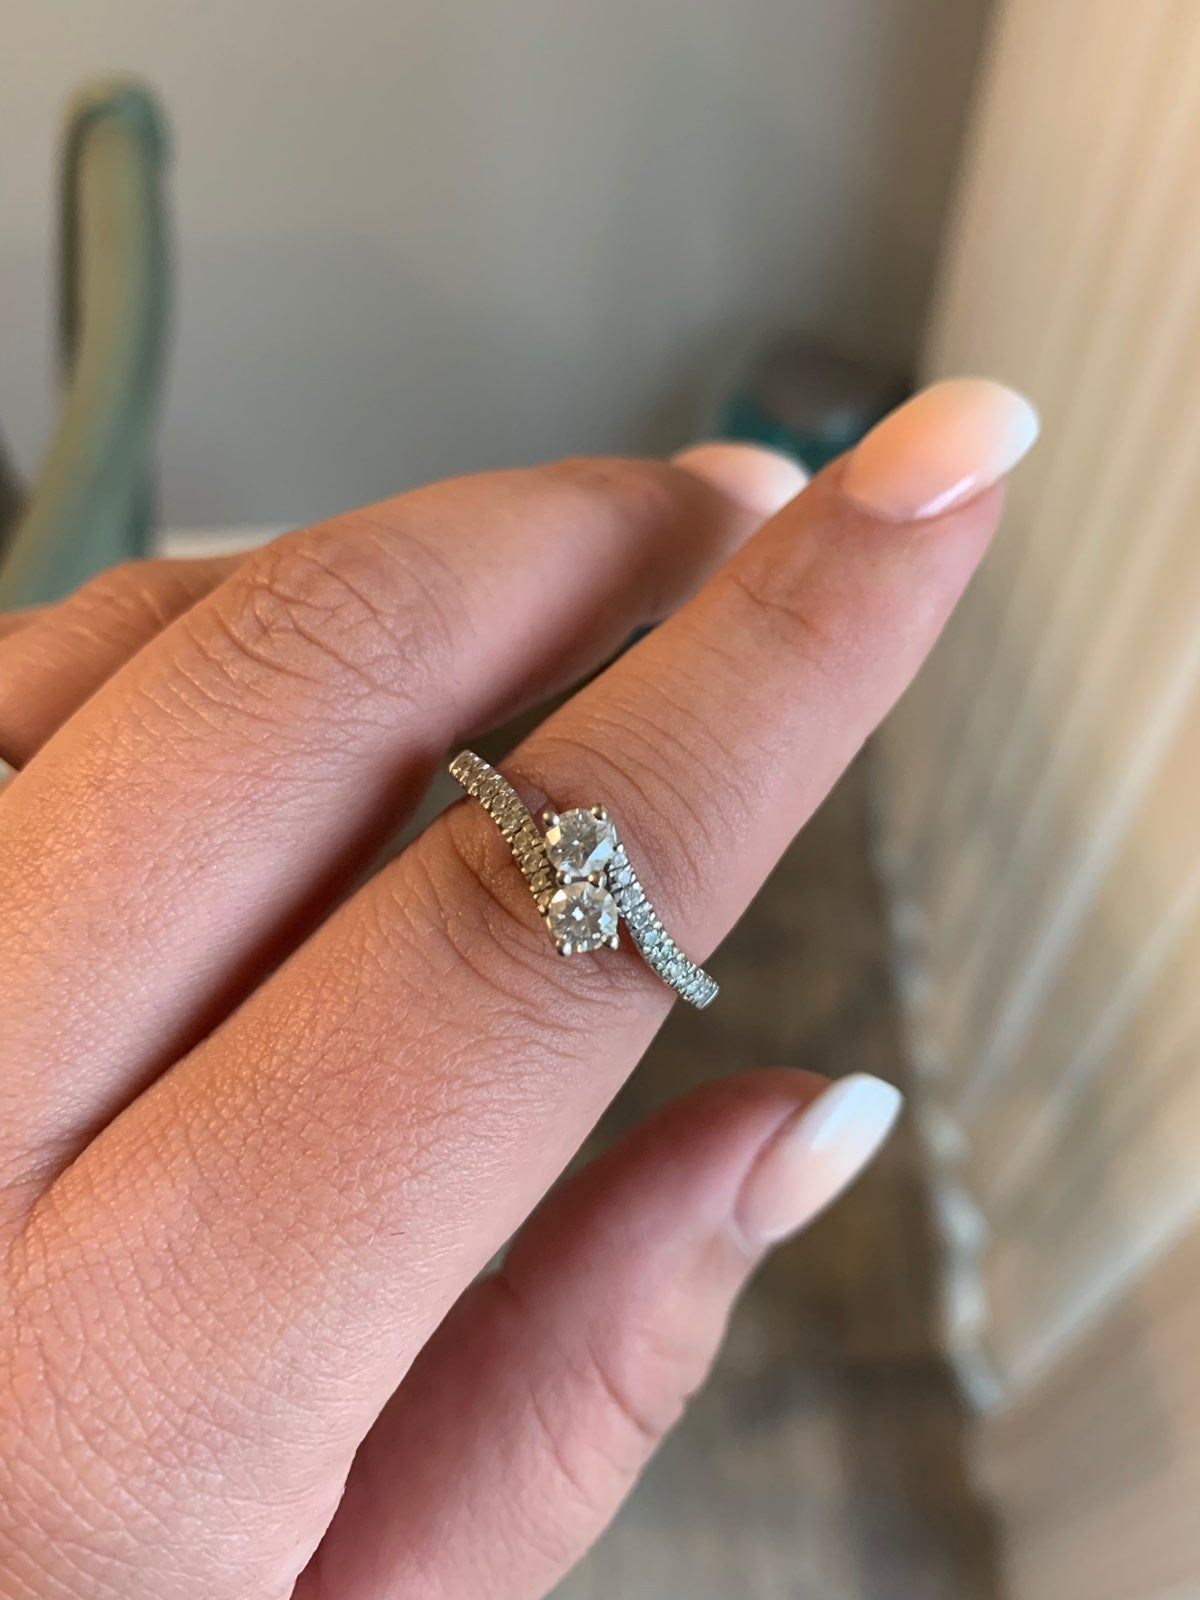 Ever Us 3 4 Ct Diamond Ring I Believe The Size Is A 10 In Excellent Condition Just Don T Wear It Like I Thought I W Kay Jewelers Rings Beautiful Rings Rings